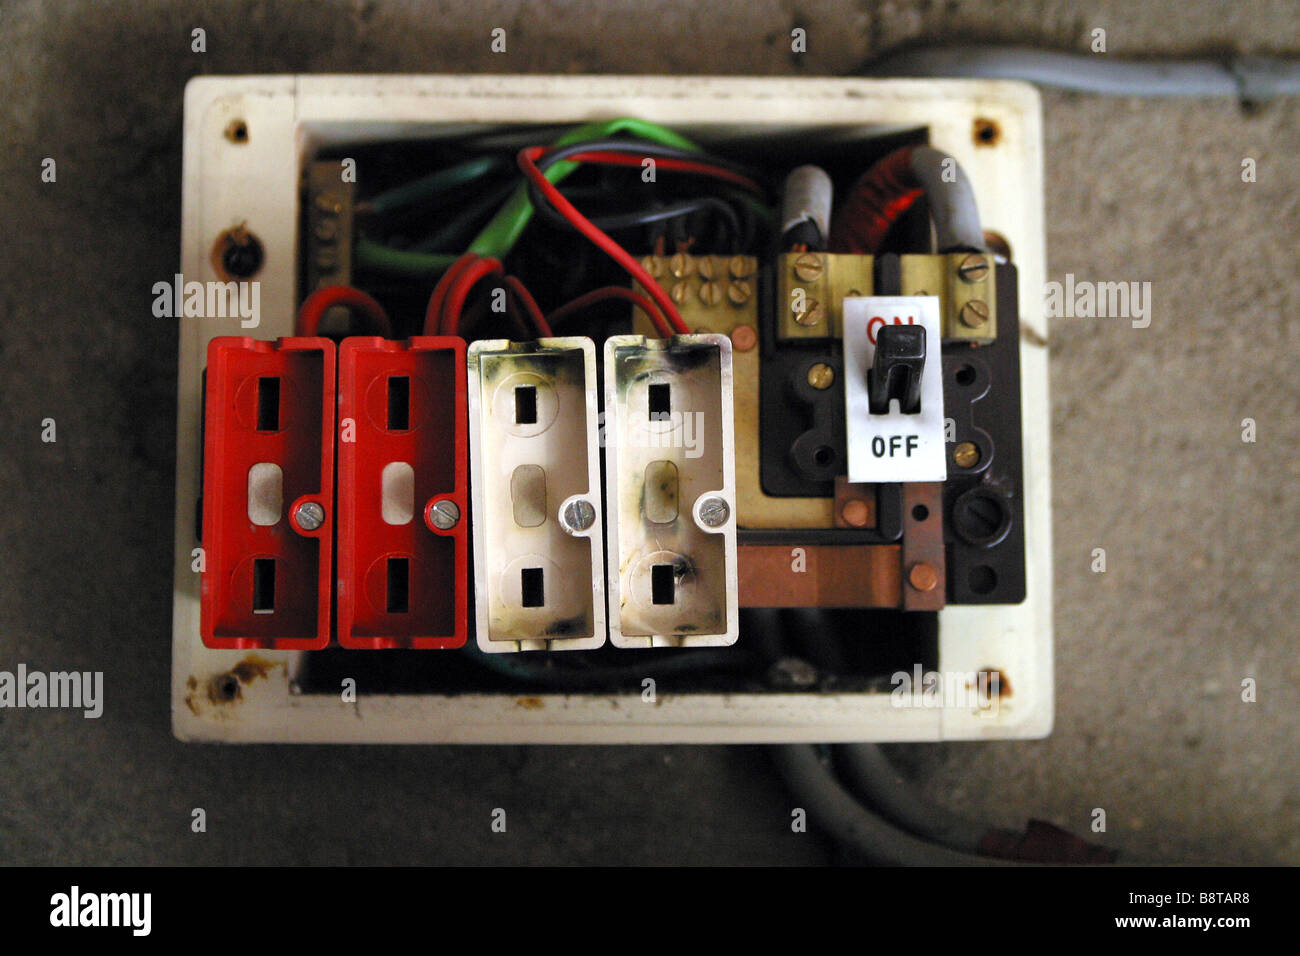 Sensational Wiring For Fuse Box Basic Electronics Wiring Diagram Wiring Digital Resources Tziciprontobusorg